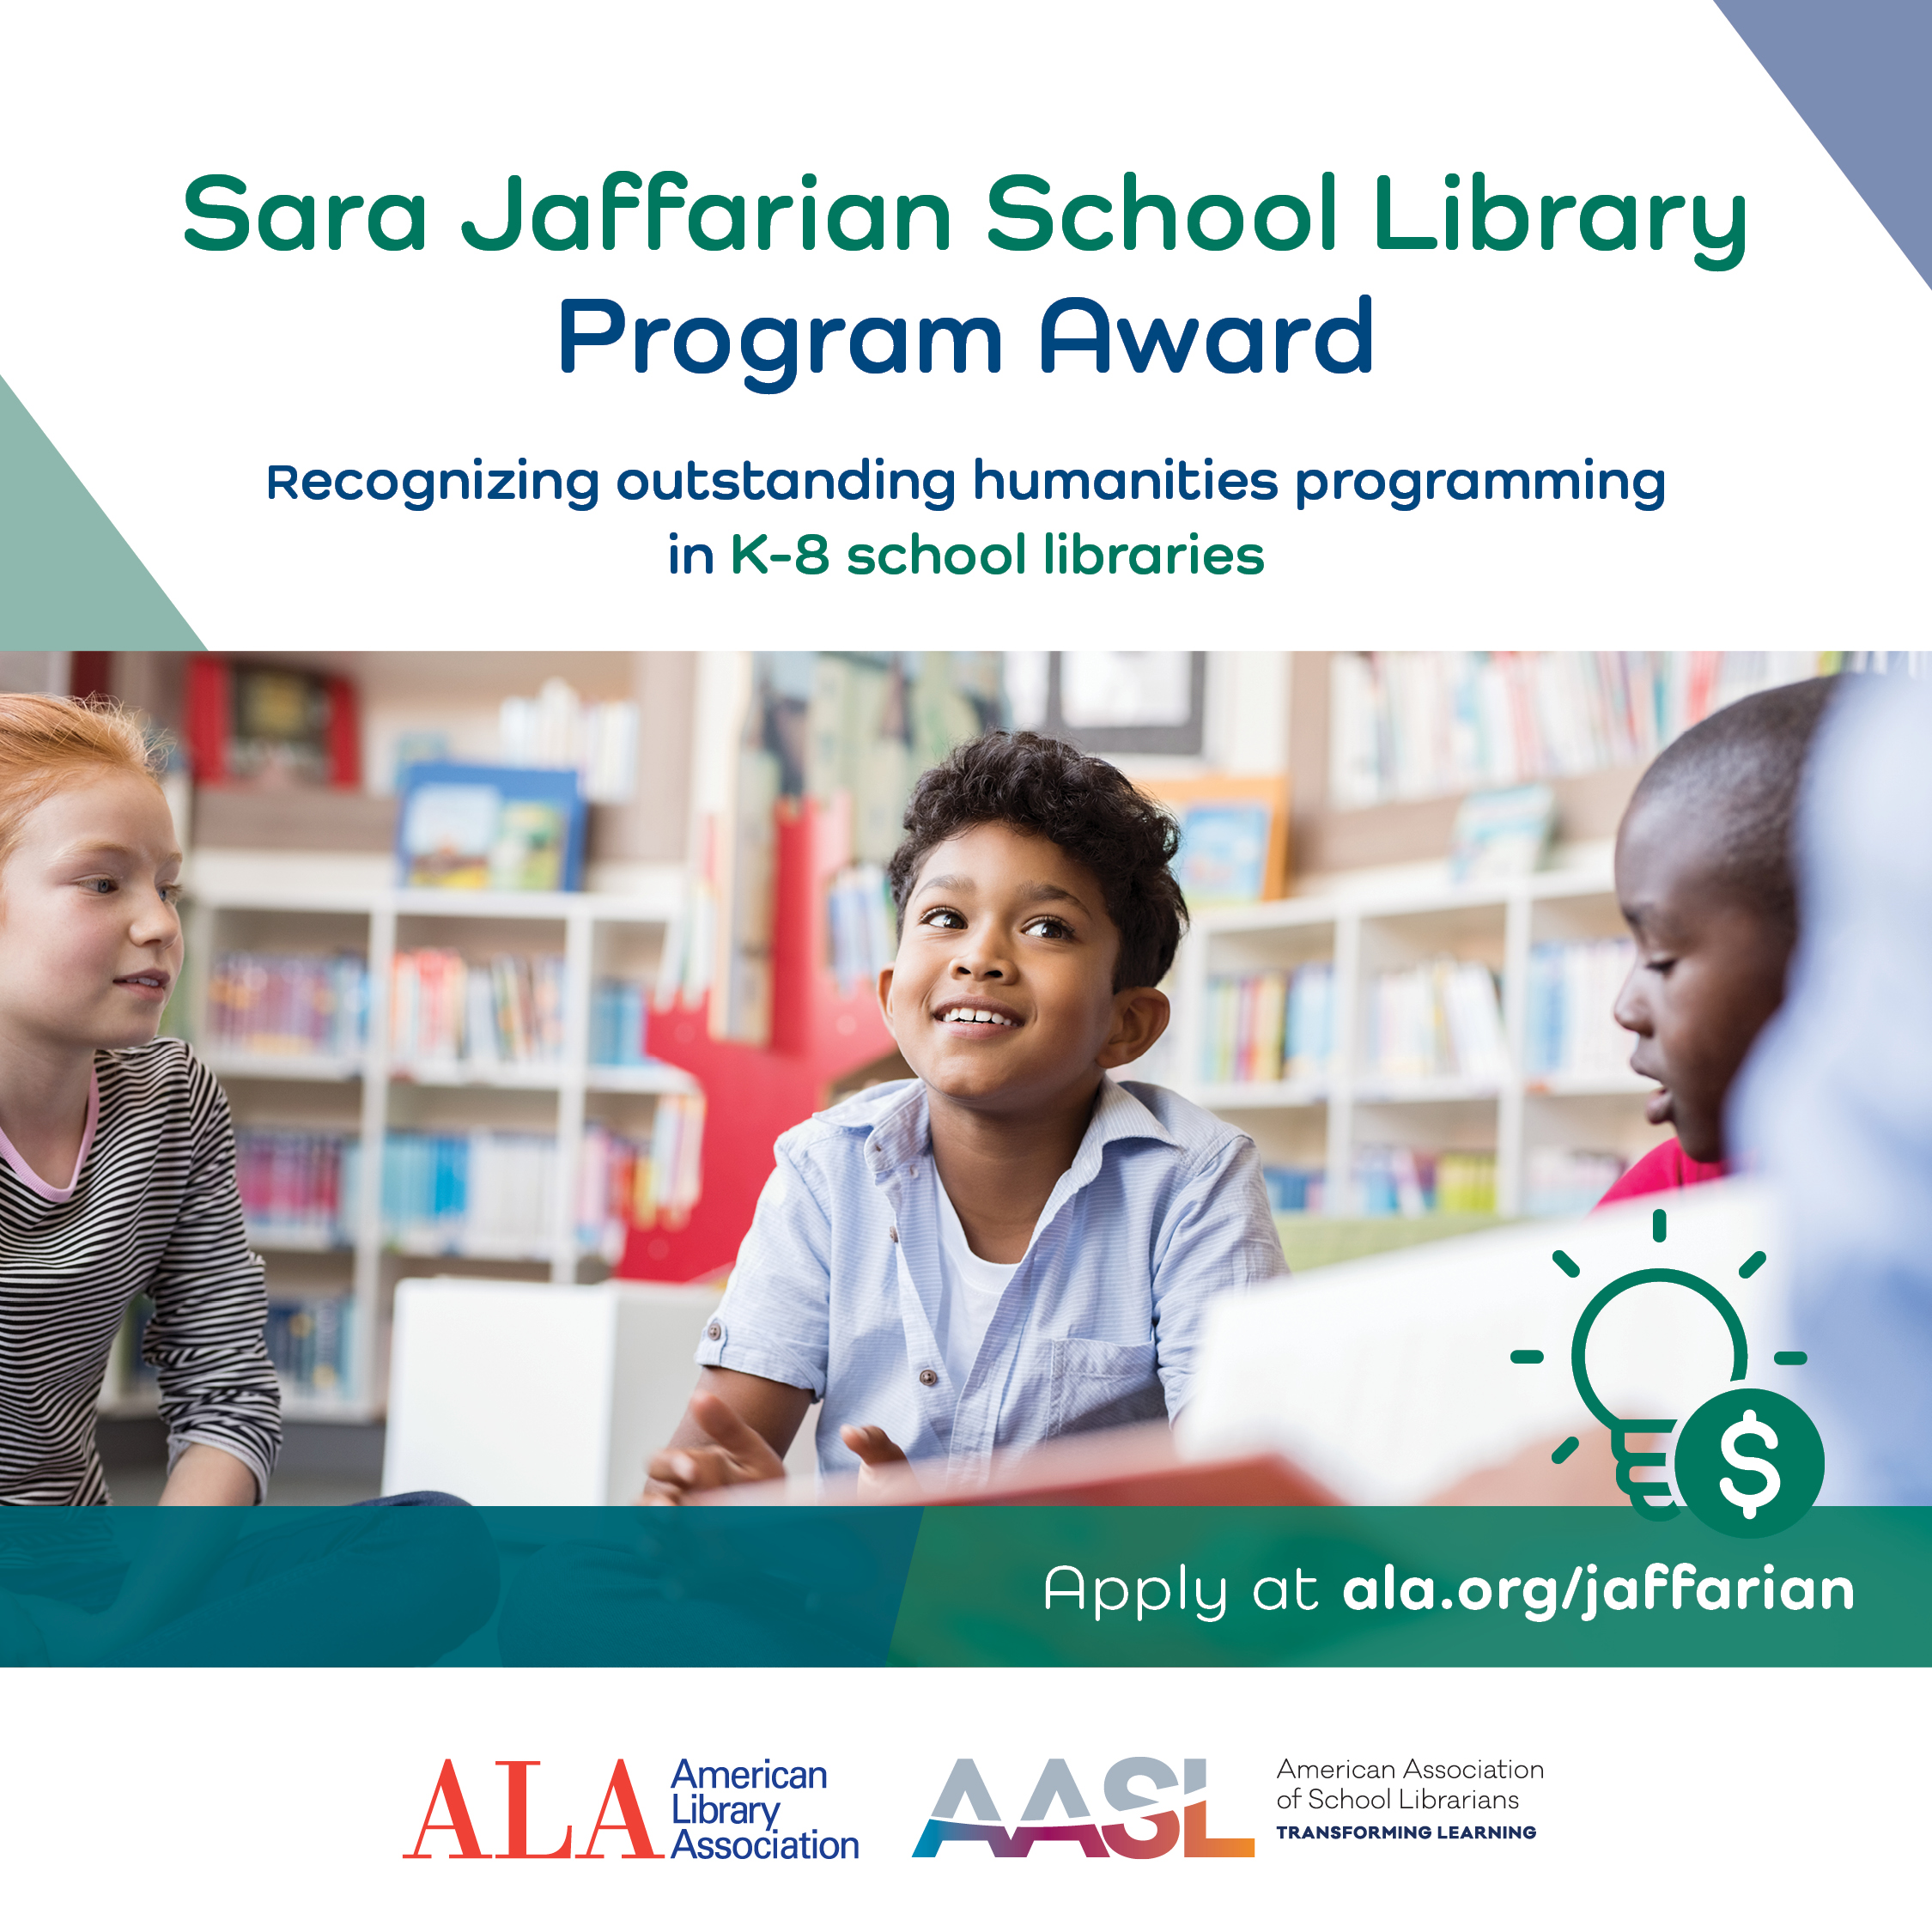 Photograph of three children sitting together. Text reads: Sara Jaffarian School Library Program Award. Recognizing outstanding humanities programming in K-8 school libraries. Apply at ala.org/jaffarian